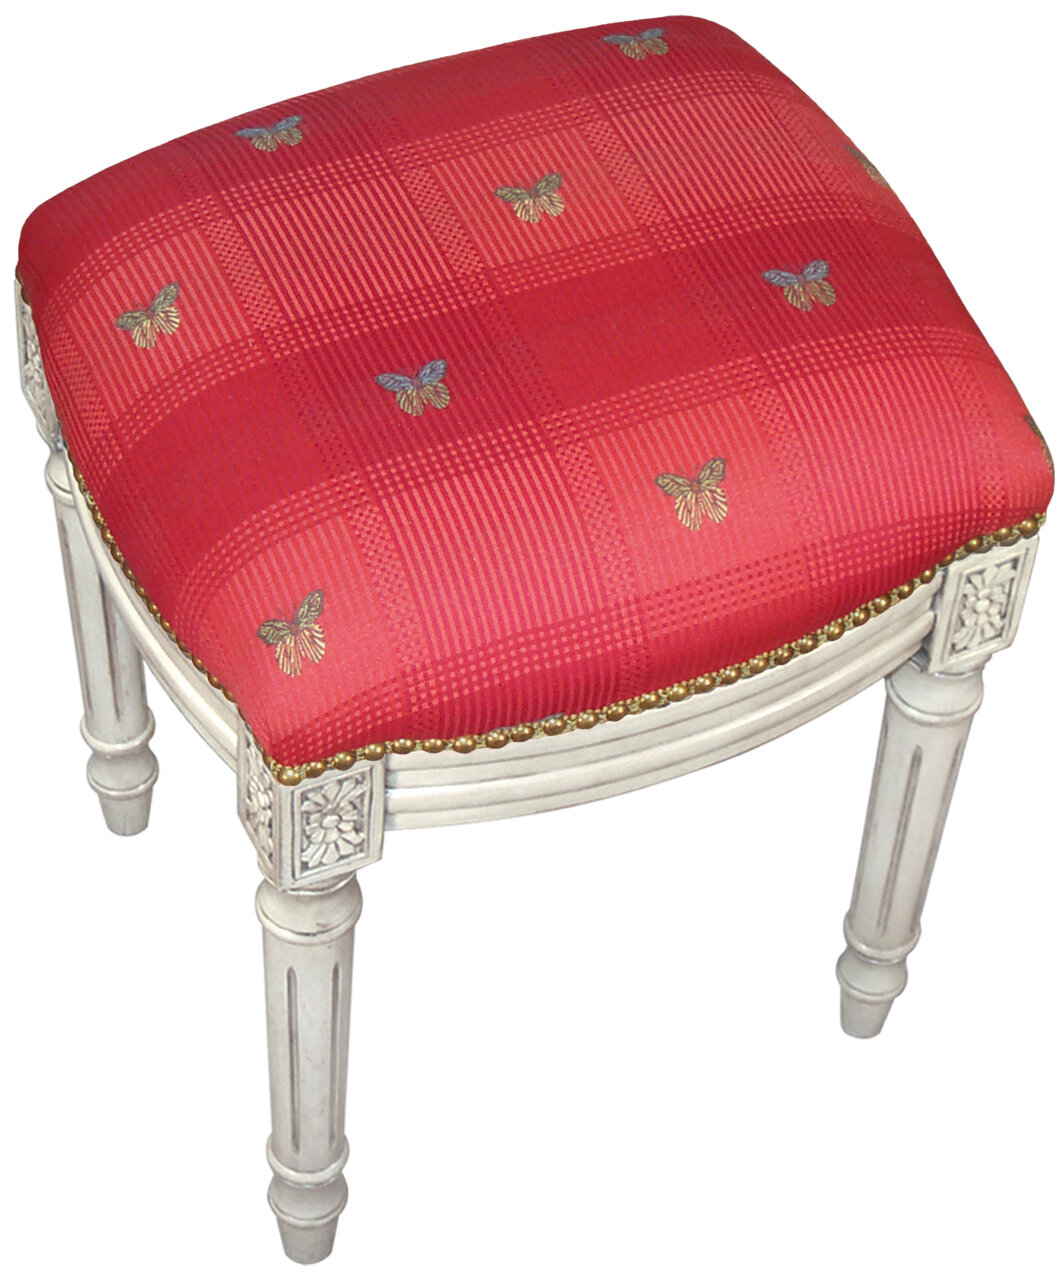 Terrific Details About 123 Creations Butterfly Upholstered Vanity Stool Theyellowbook Wood Chair Design Ideas Theyellowbookinfo